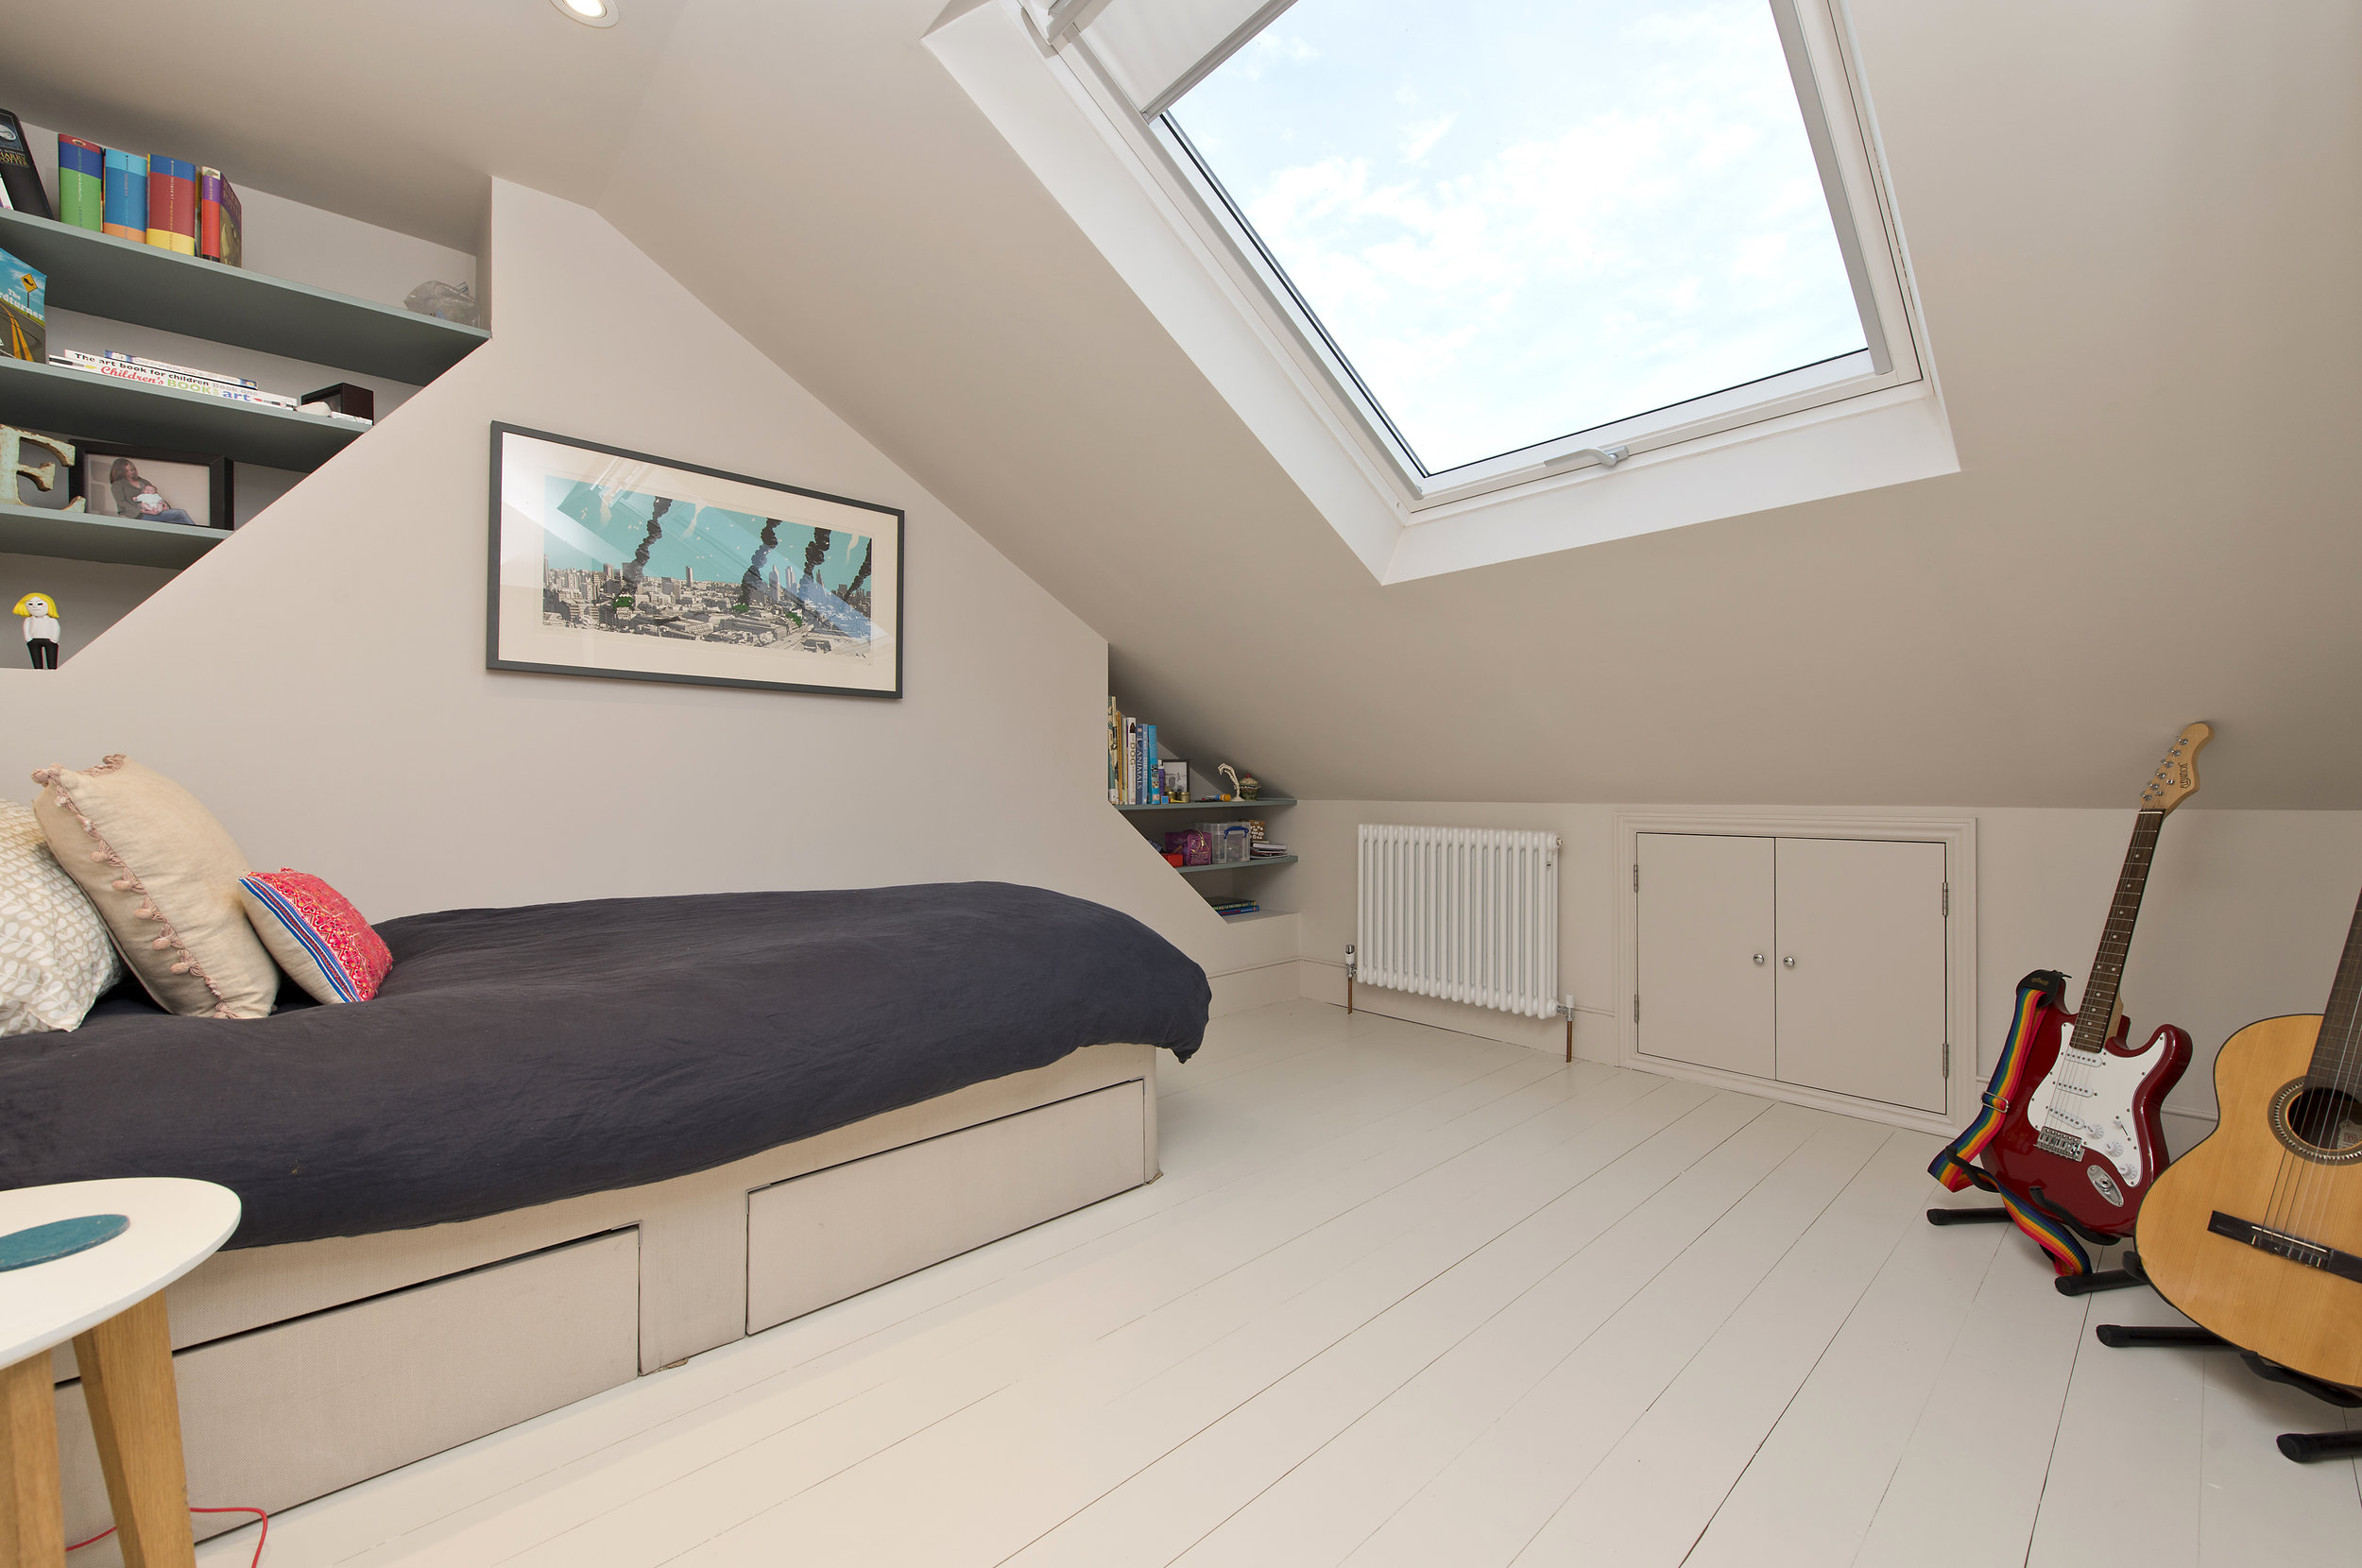 Another stunning Loft conversion in Shepherd's Bush by The Kitchen and Loft Company.